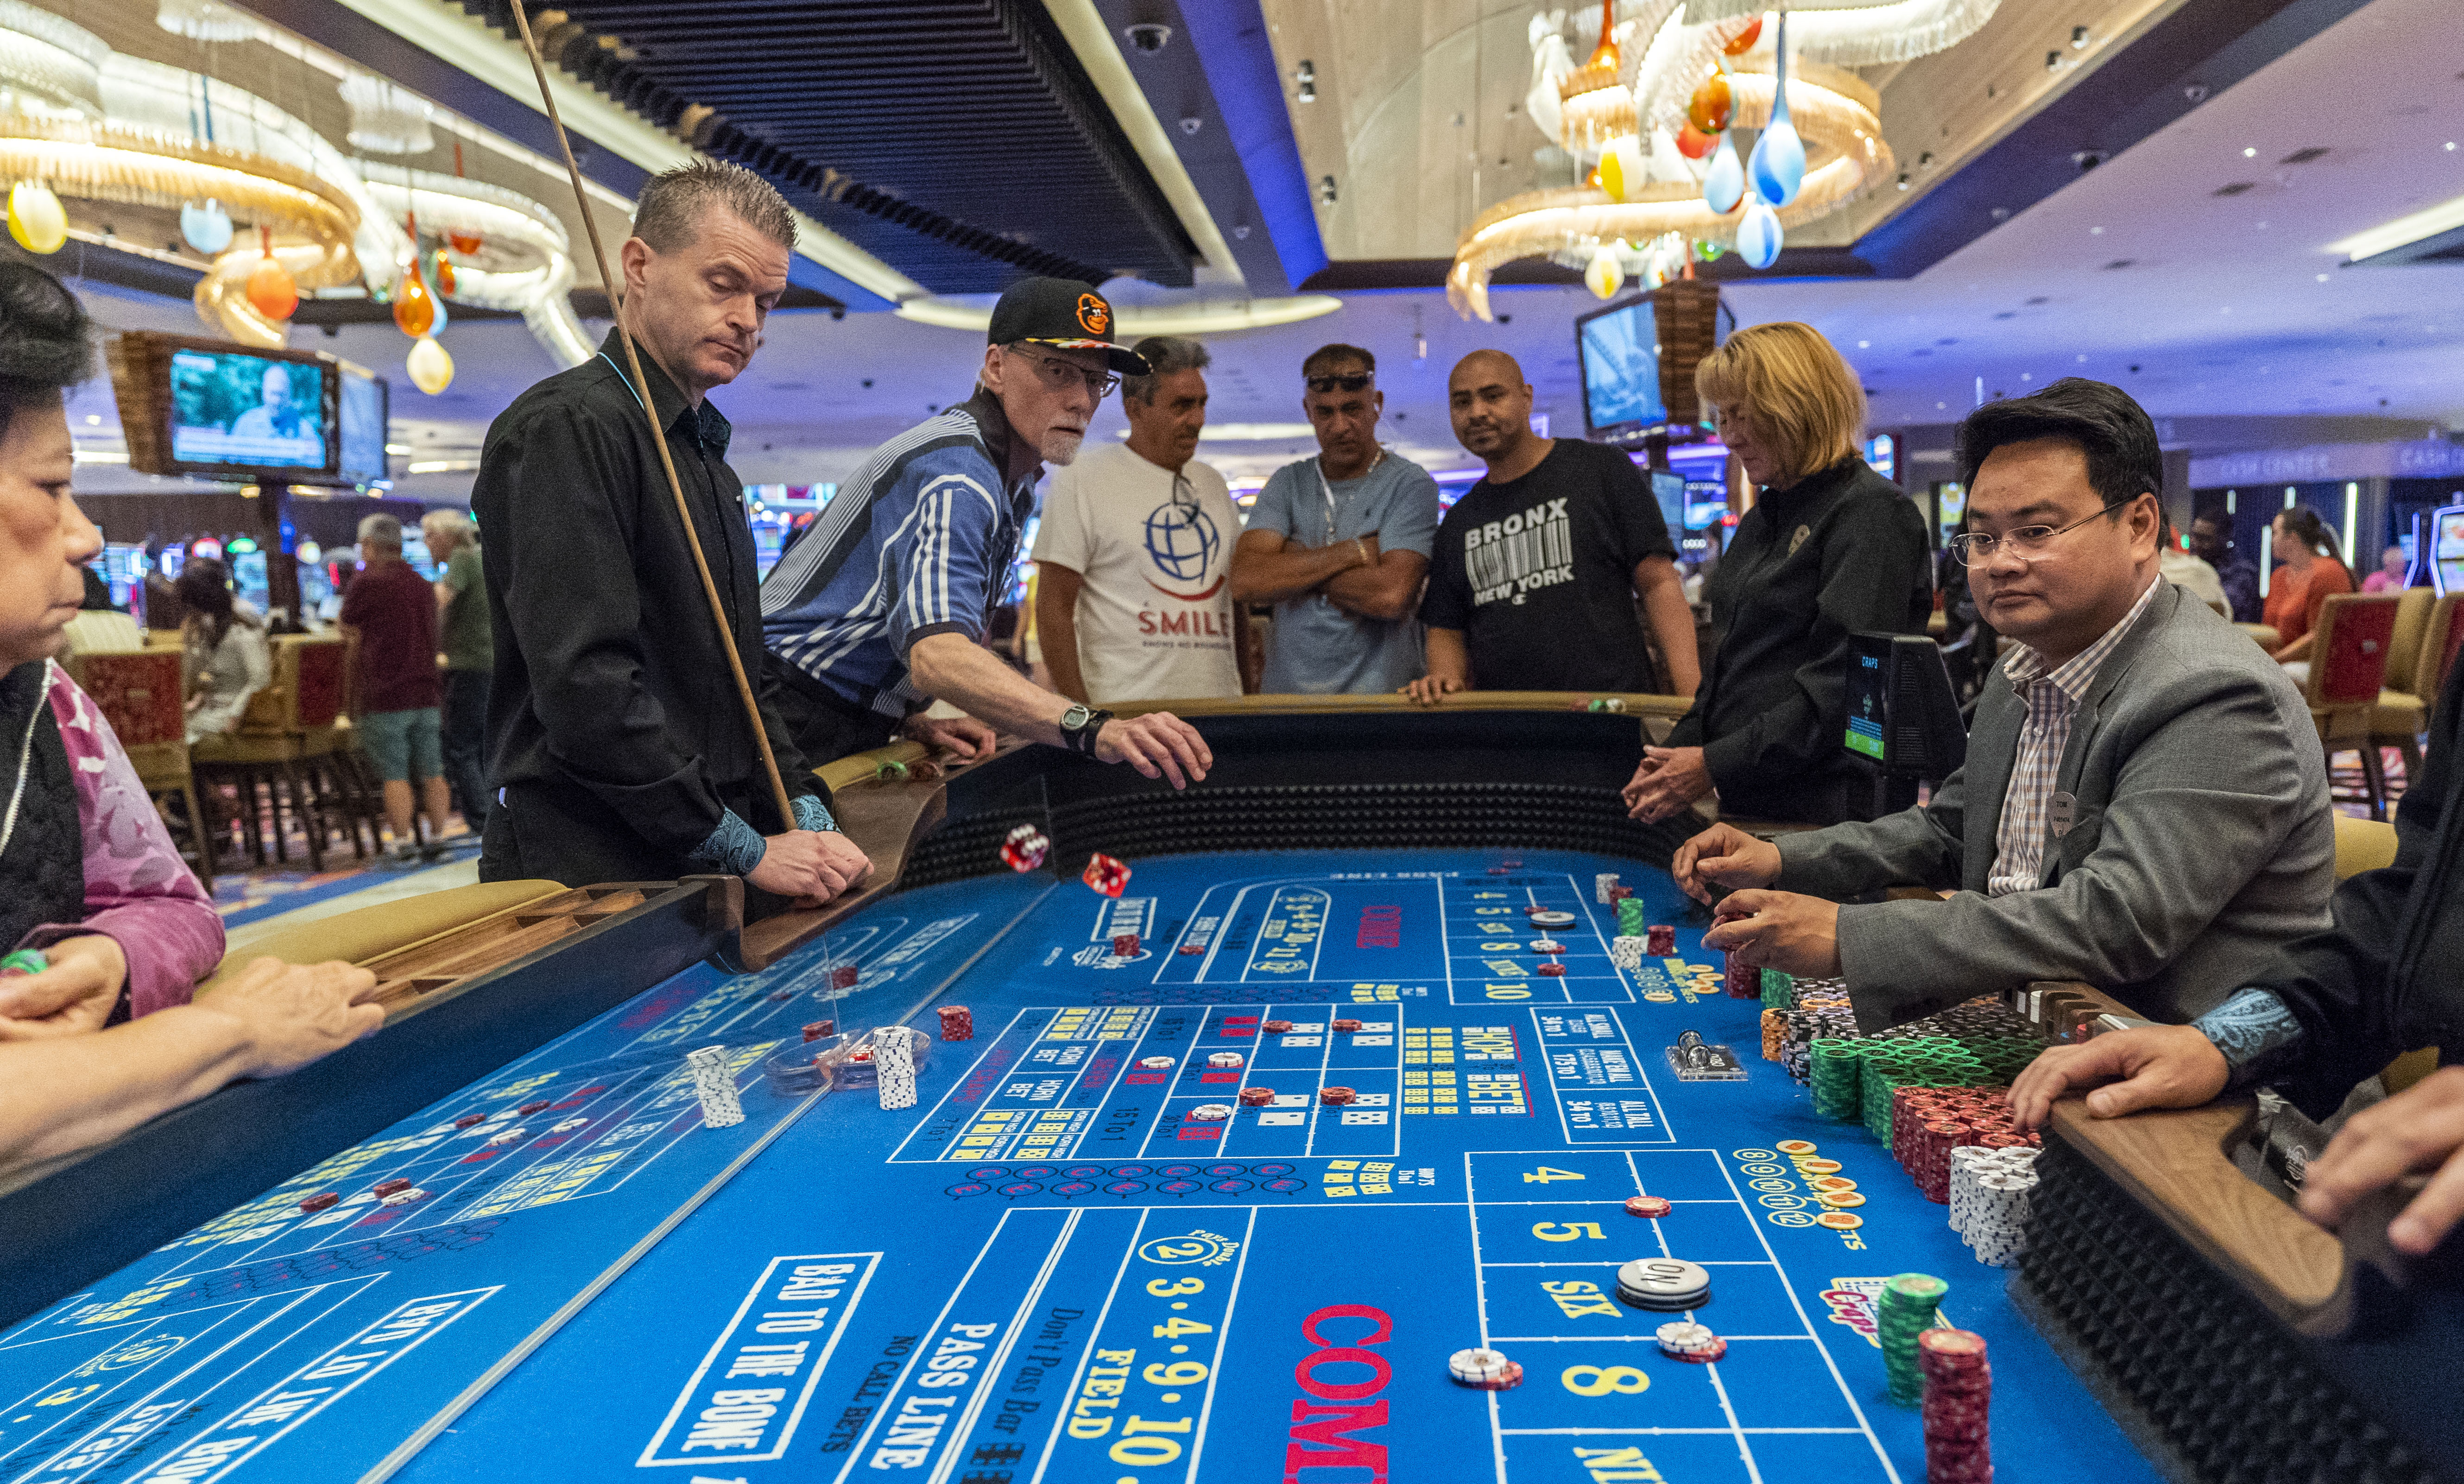 Patrons gamble inside the Hard Rock Hotel and Casino in Atlantic City, New Jersey. The Hard Rock is one of two new casinos that opened last year in the seaside resort. (Jessica Kourkounis/Getty Images)